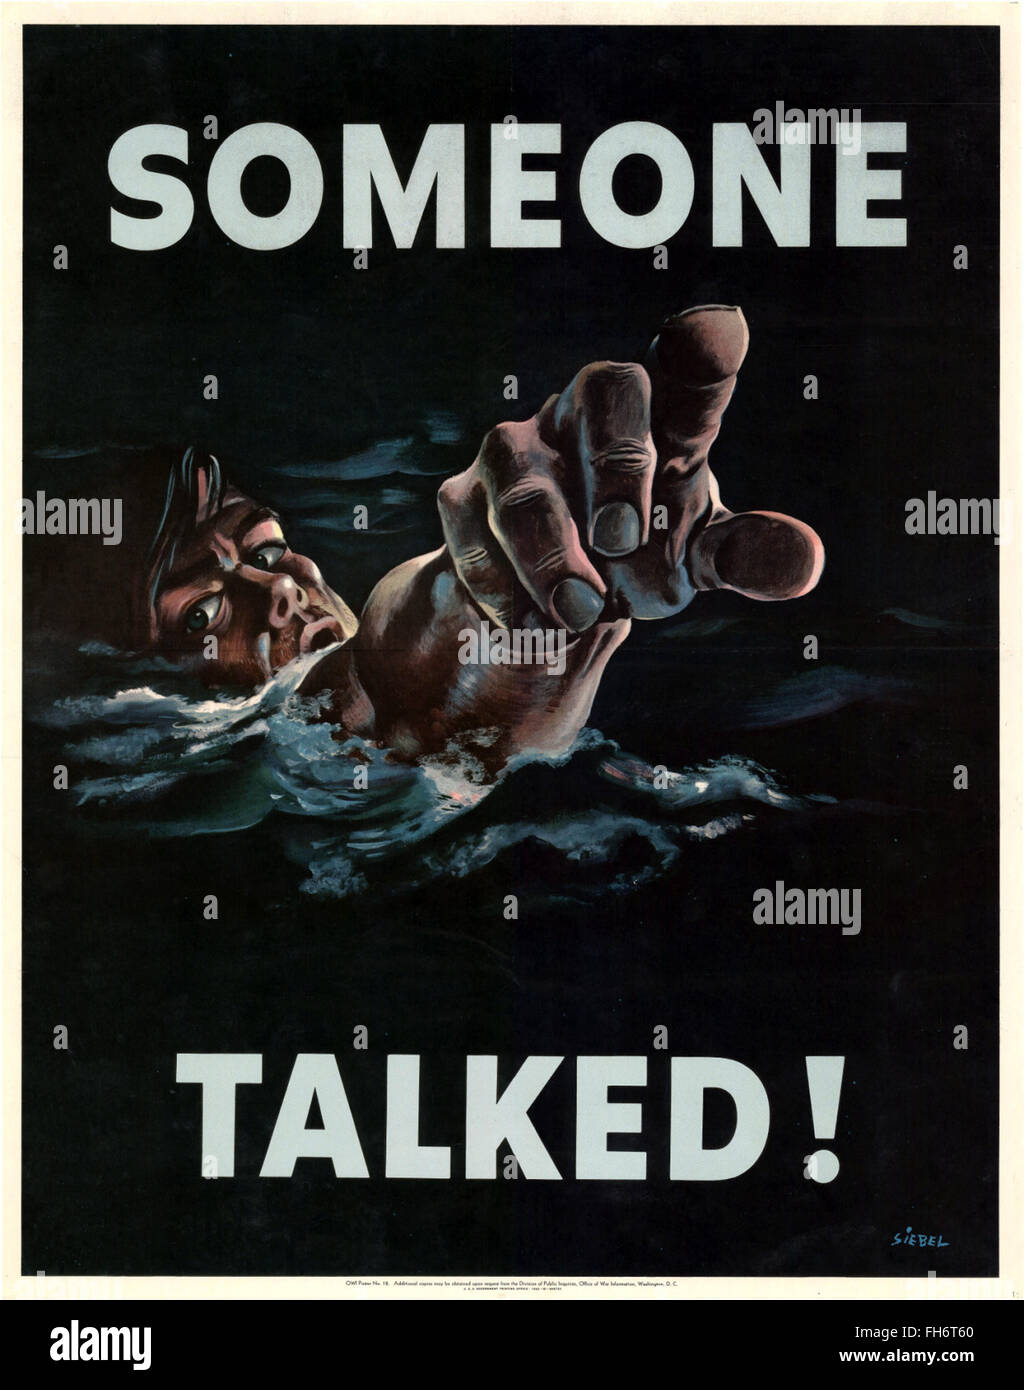 Someone Talked ! - US Propaganda Poster - WWII - Stock Image